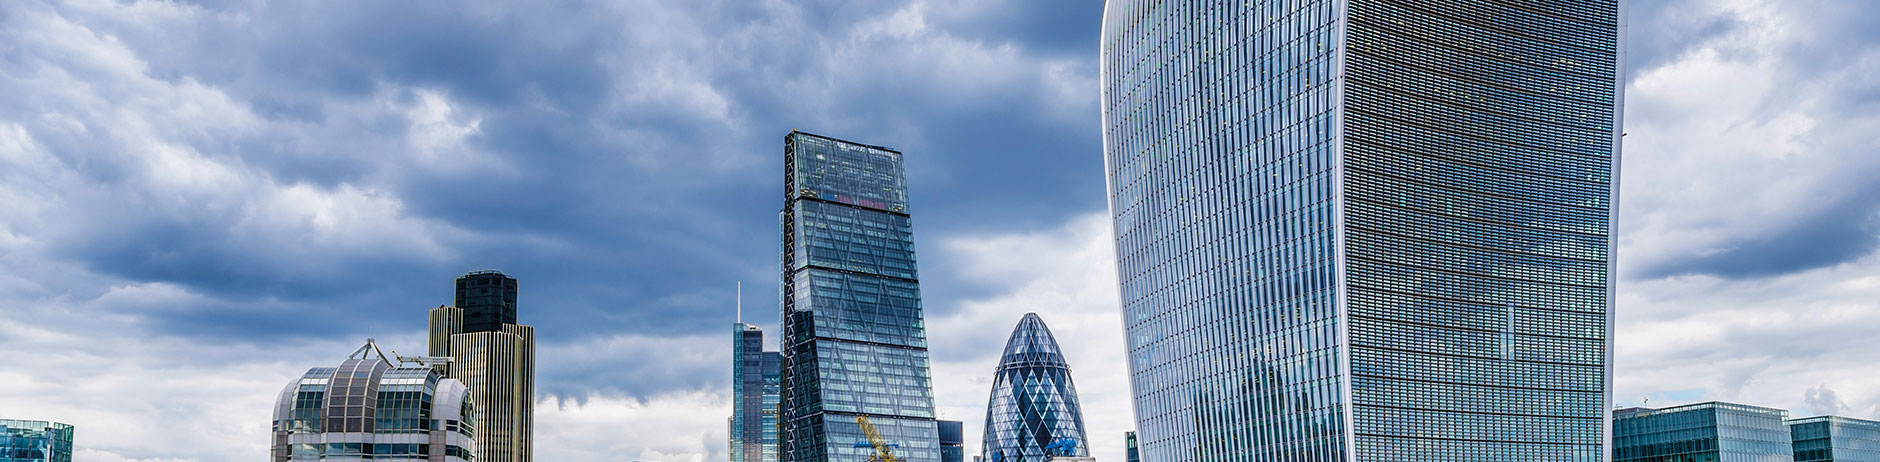 Walkie talkie and the financial district in London